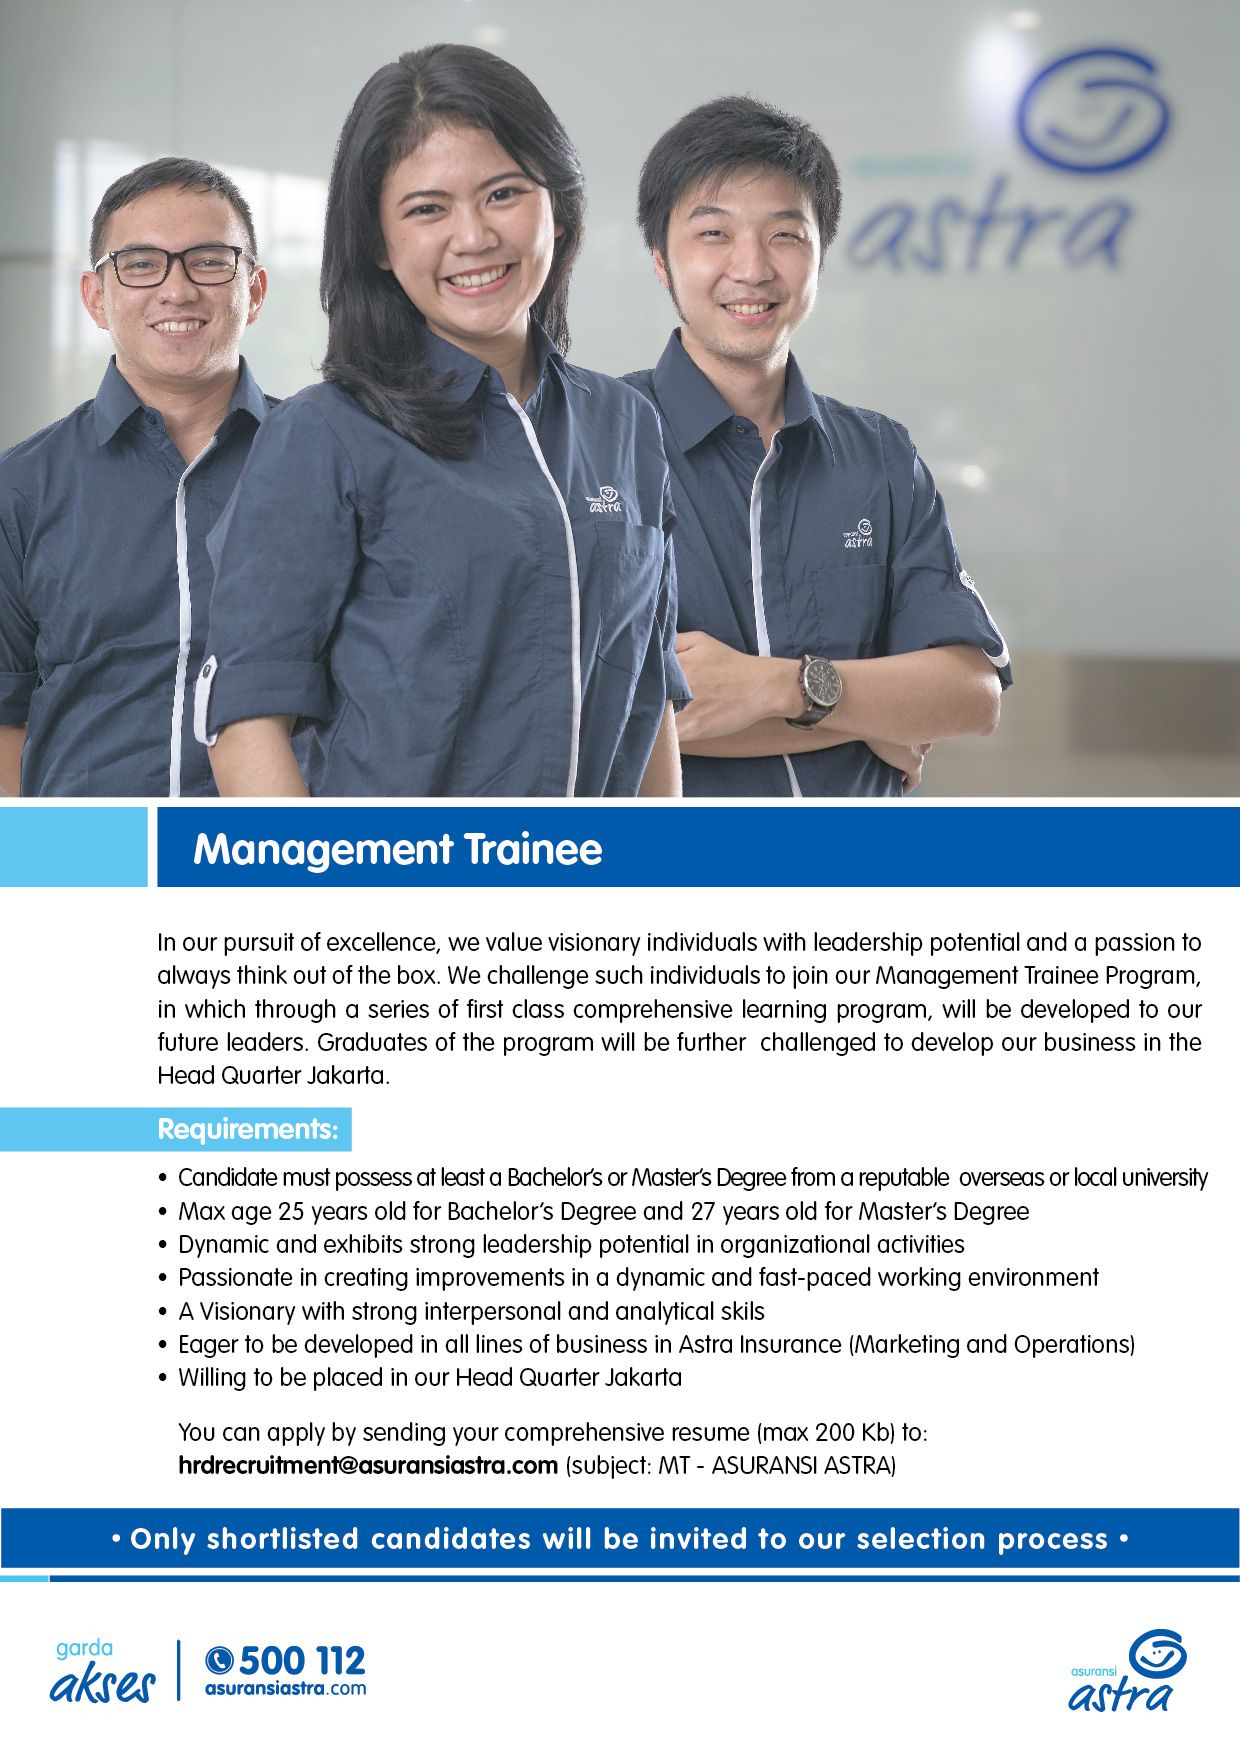 open! 9 position from toyota astra financial services as mt, ae